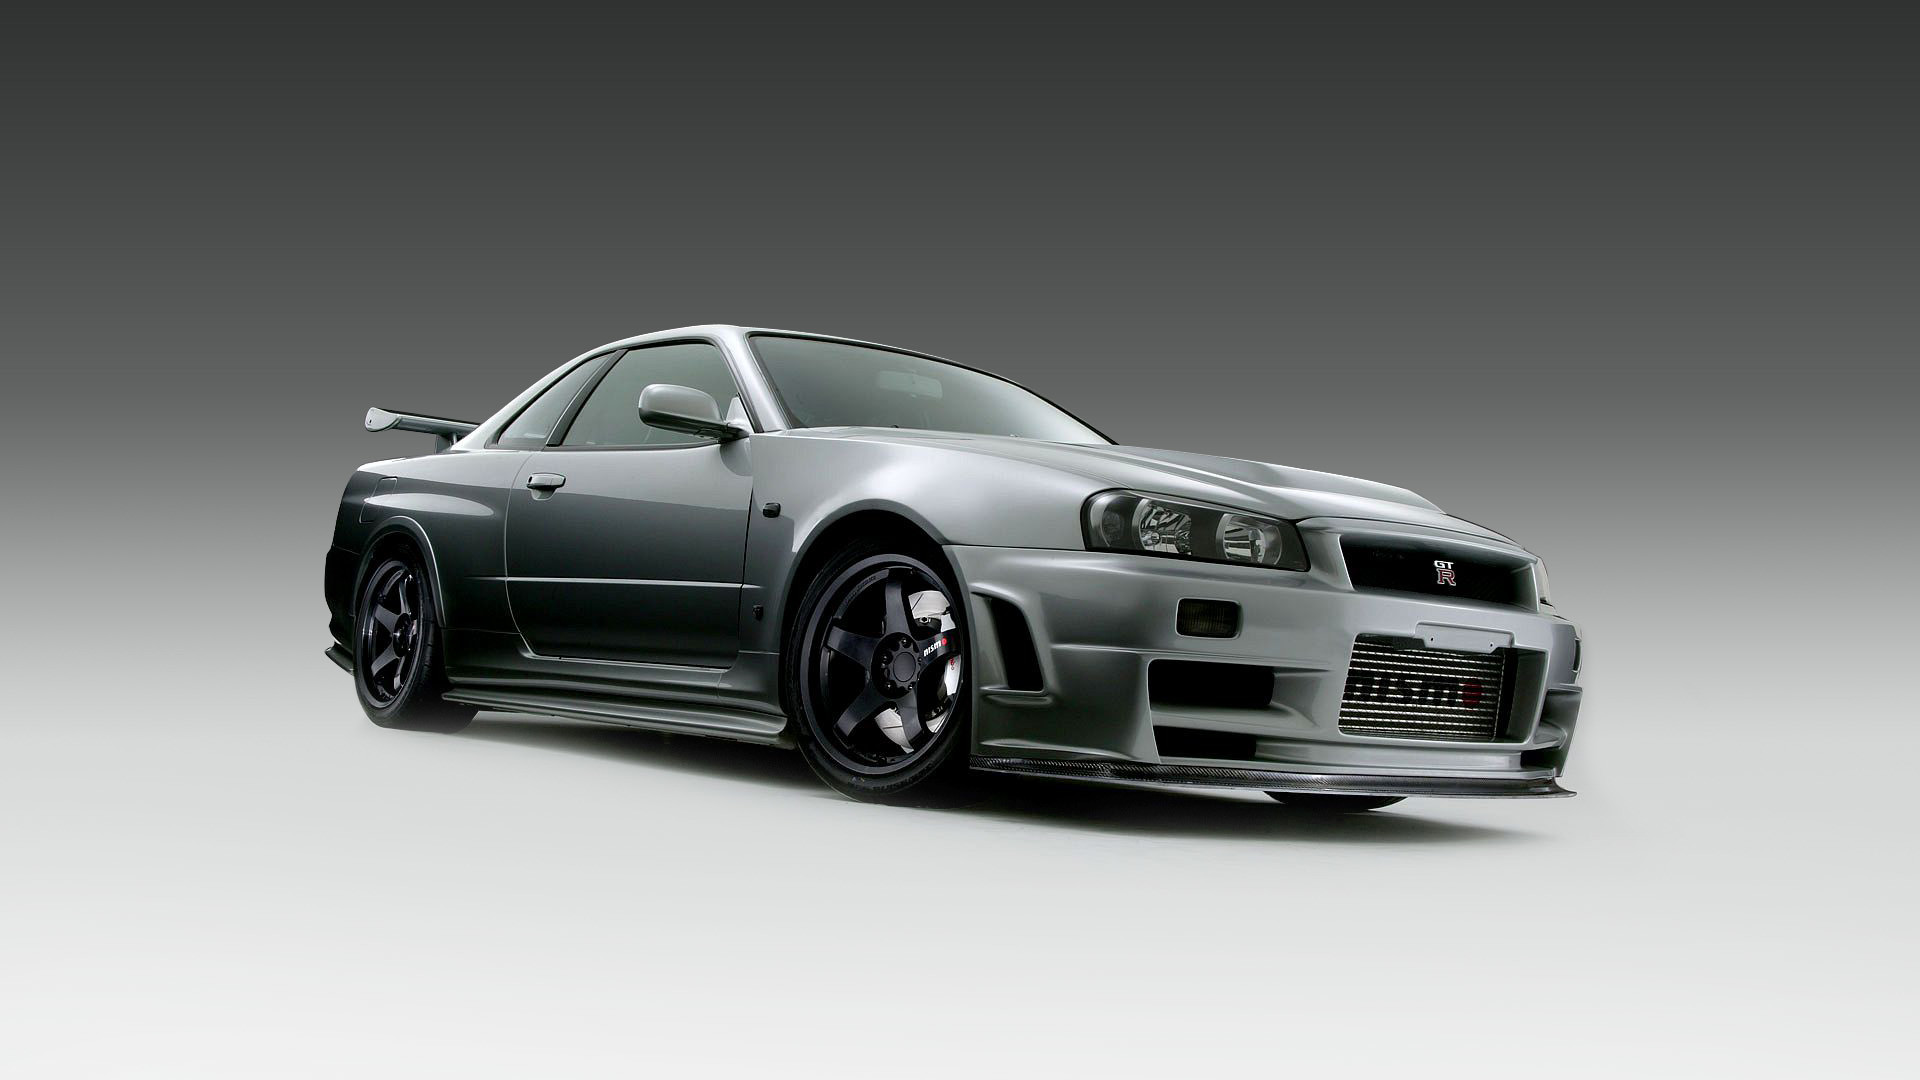 Res: 1920x1080, 2001 Nissan Skyline R34 GT R Nismo Wallpapers